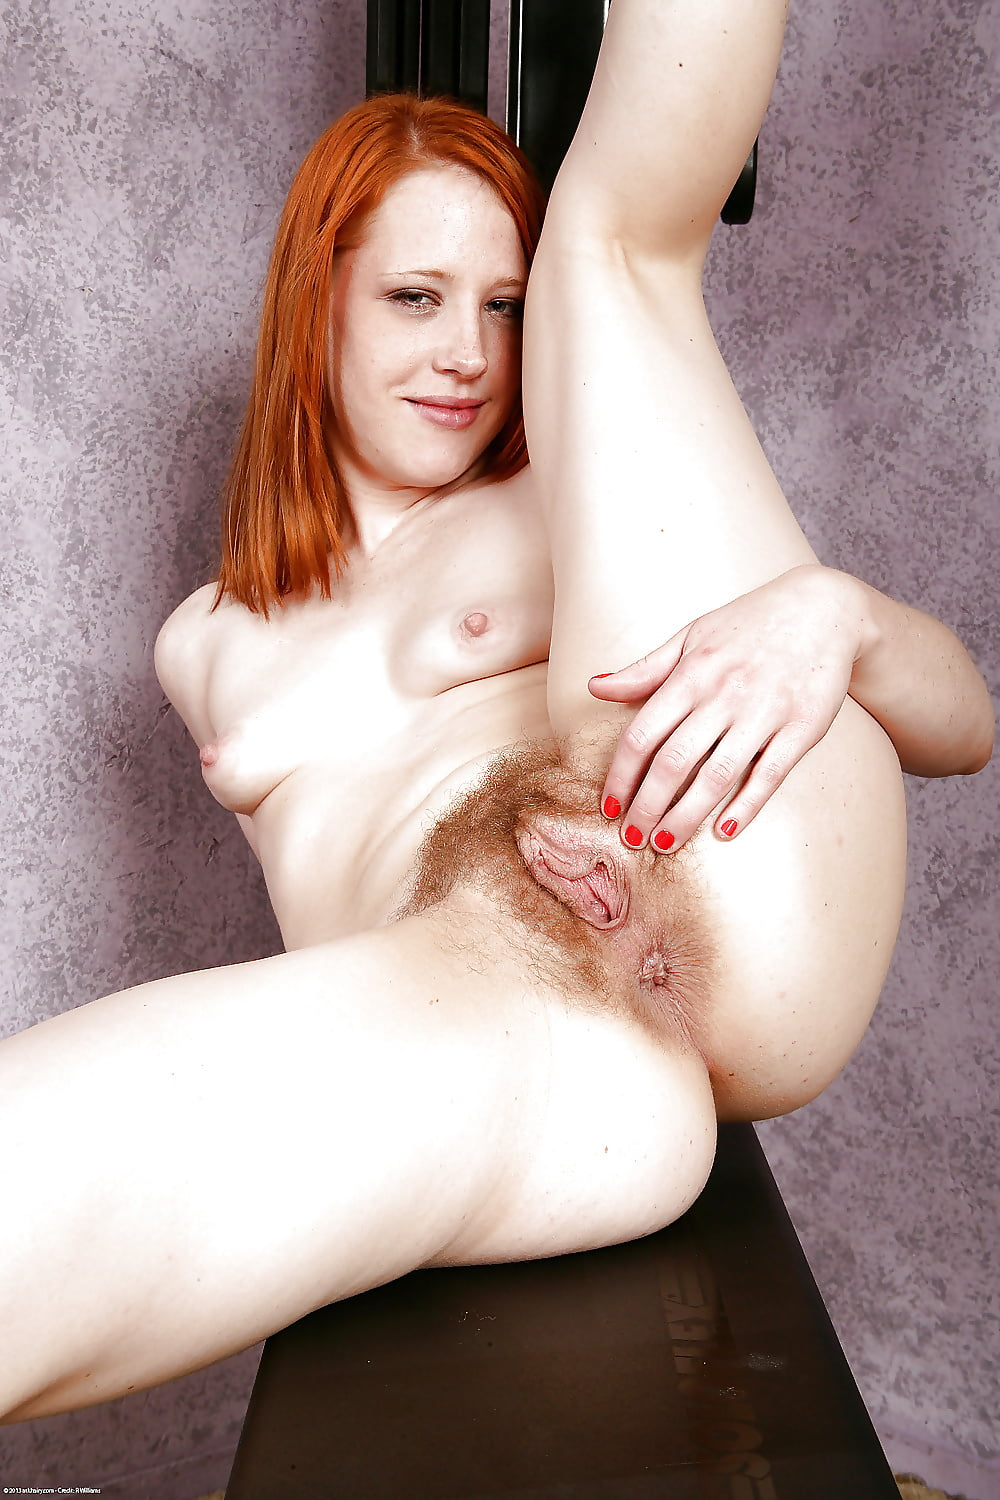 Very Hairy Ginger Bush Creampie Closeup Red Hair Pussy Sliding Screw Pov Tnaflix Porn Pics